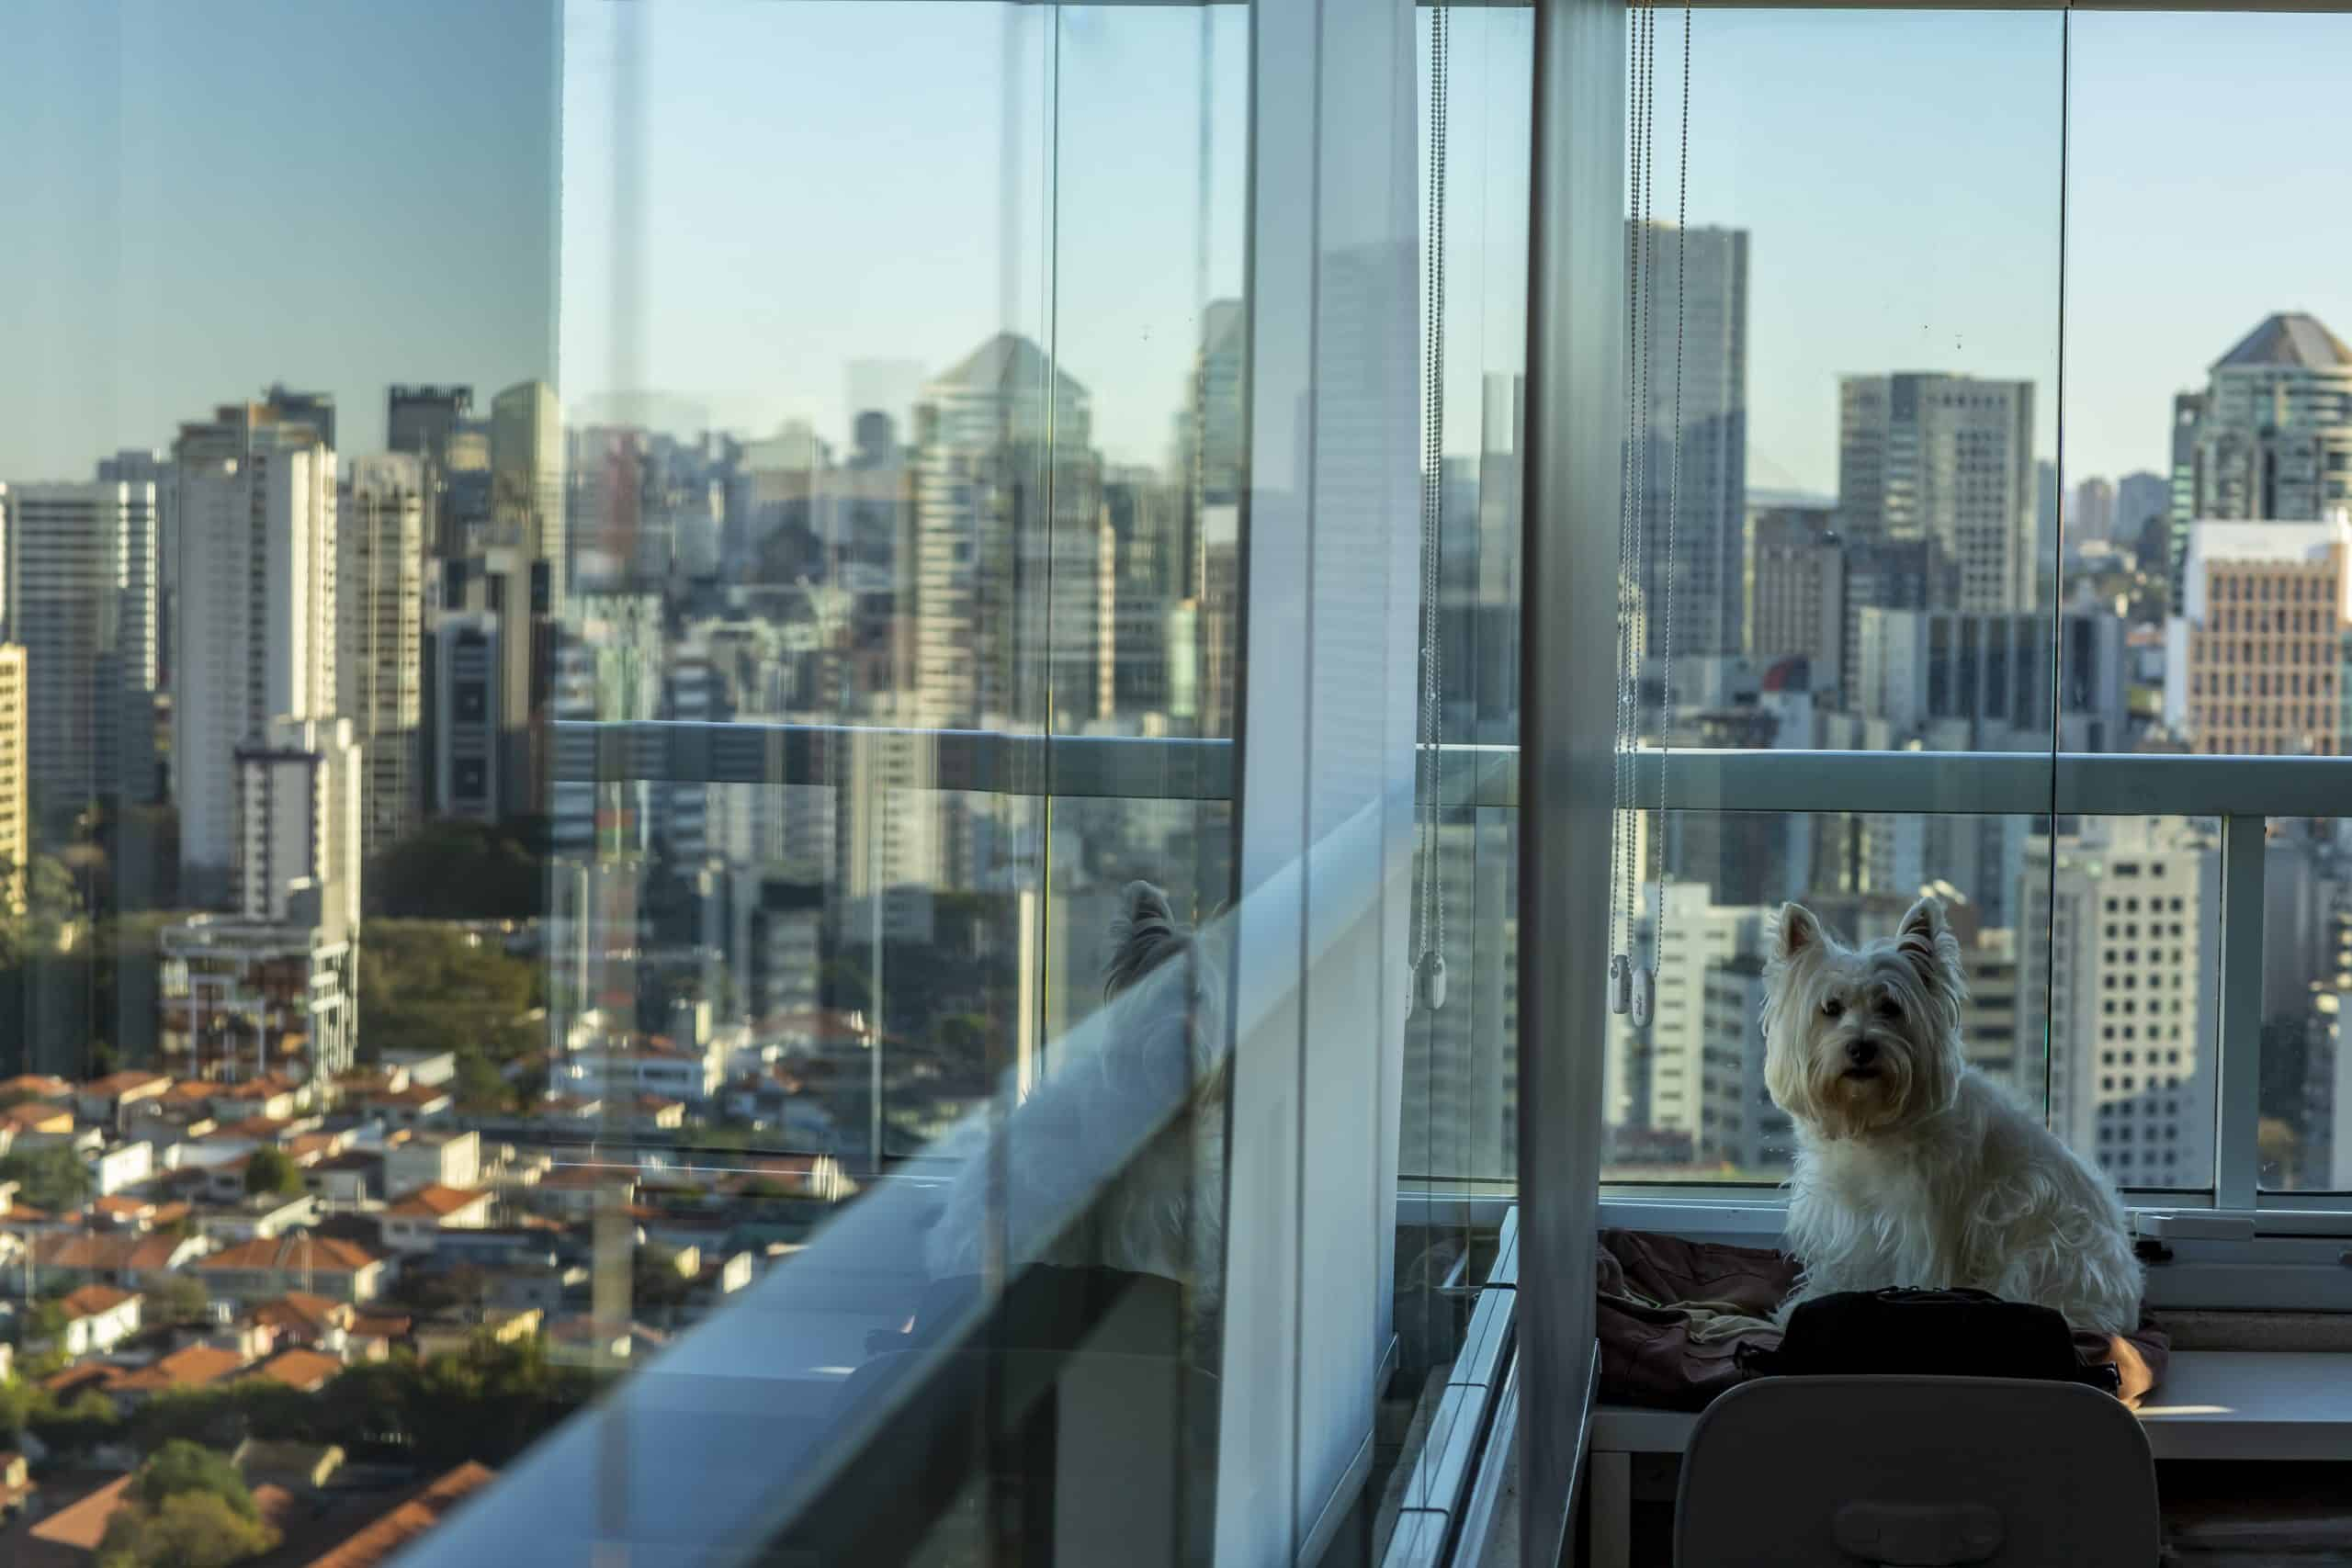 Cute Westie sits in apartment overlooking busy city. Help your dog adjust to city life by exposing it to cars, escalators, elevators, trains, trams, and buses.